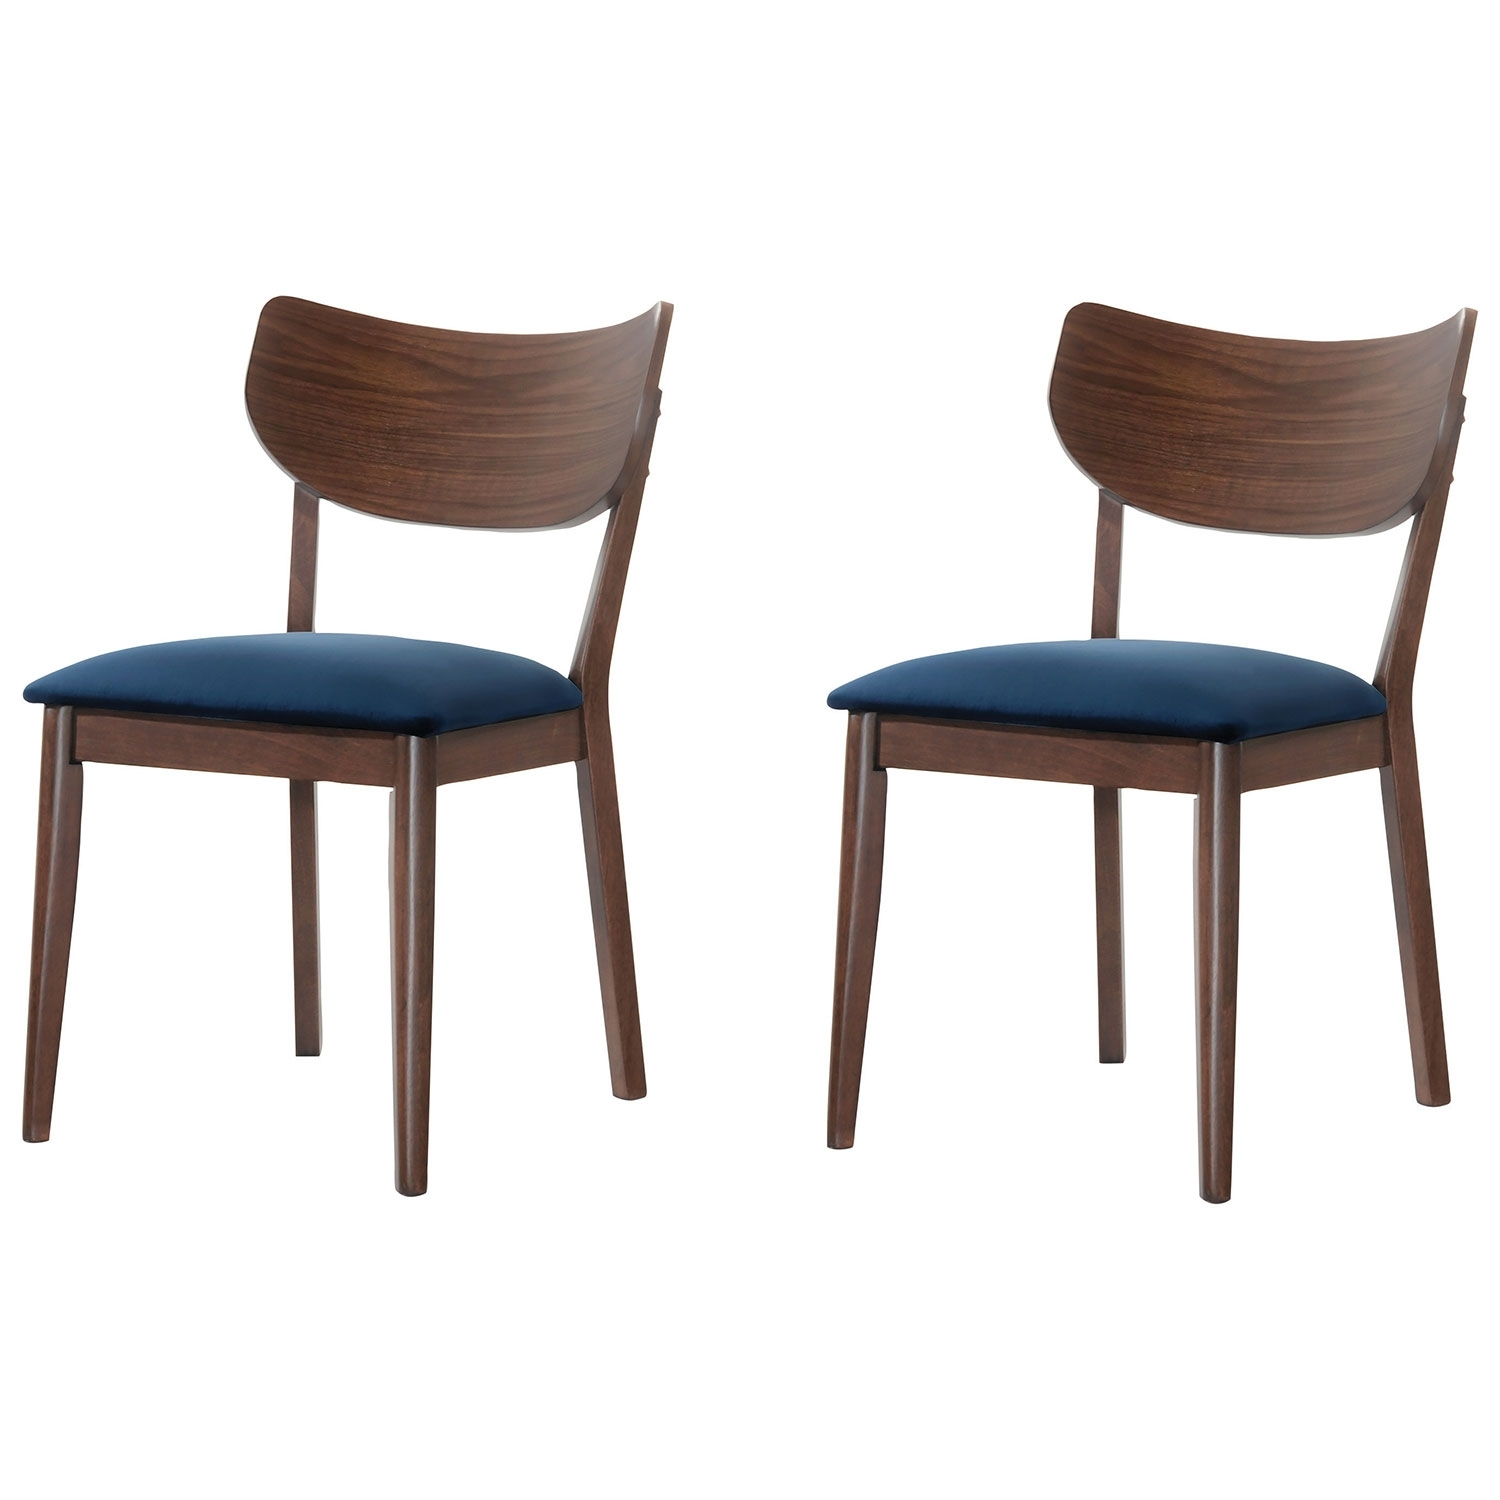 Recent Dining Chairs: Leather, Modern, Contemporary & More – Best Buy Canada Within Cole Ii Black Side Chairs (View 17 of 20)